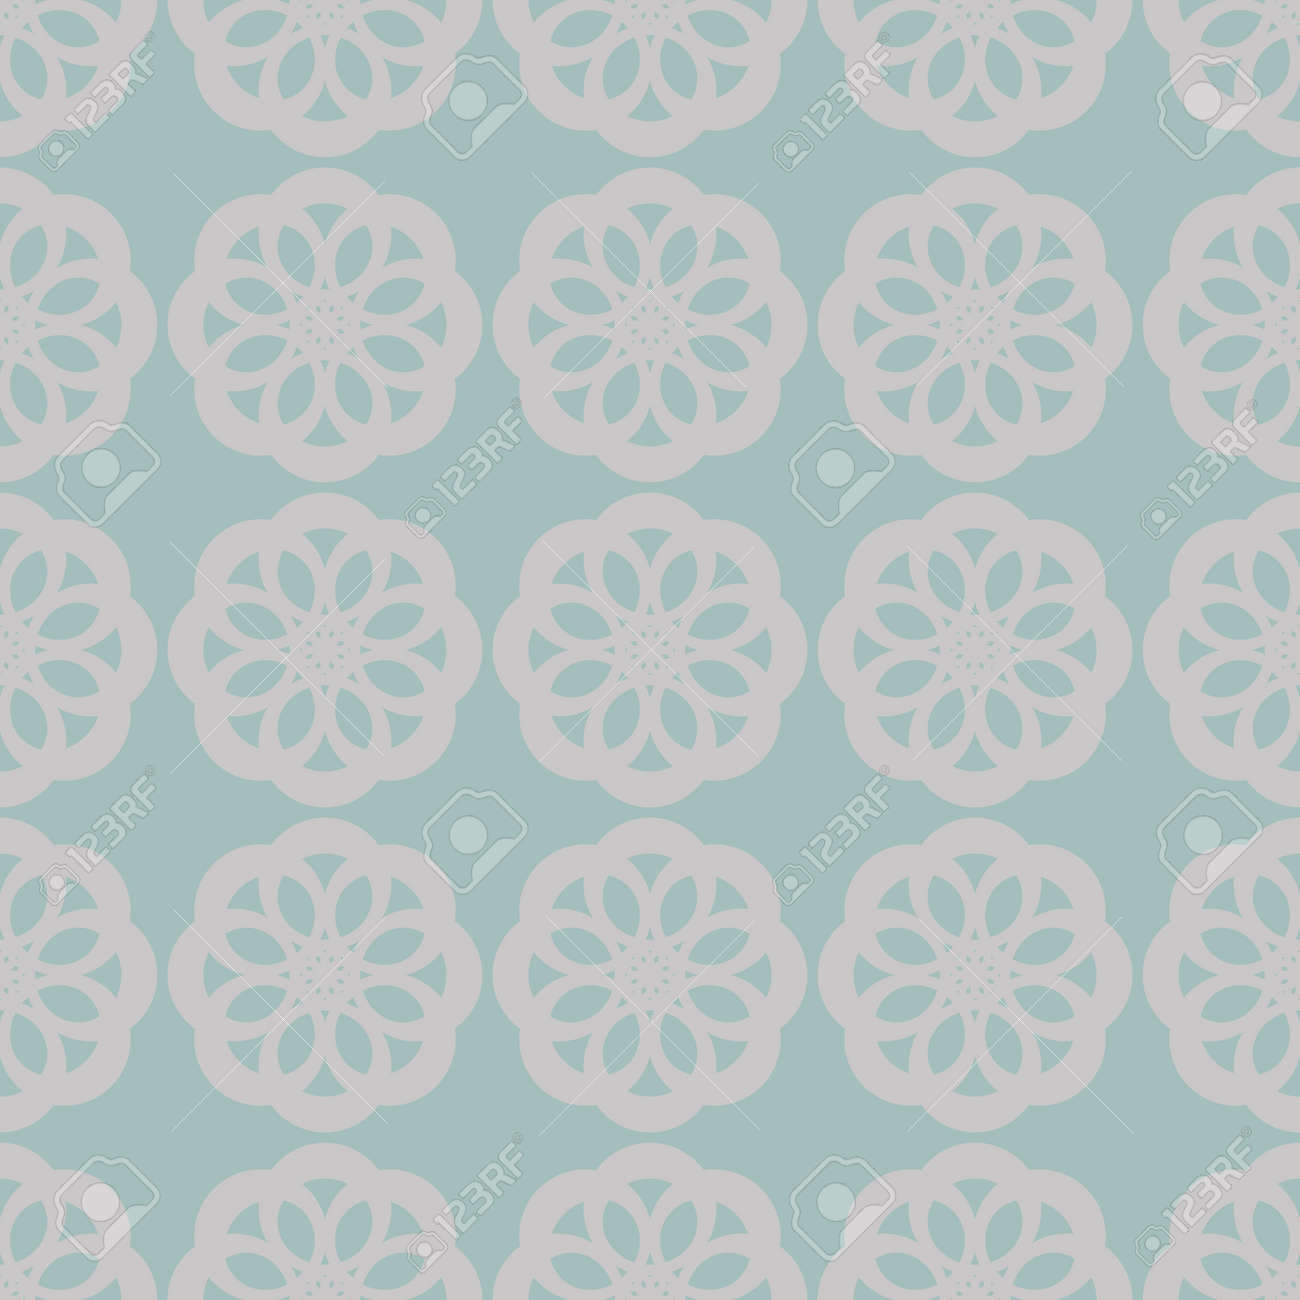 Seamless abstract vintage light gray pattern Stock Photo - 92435820